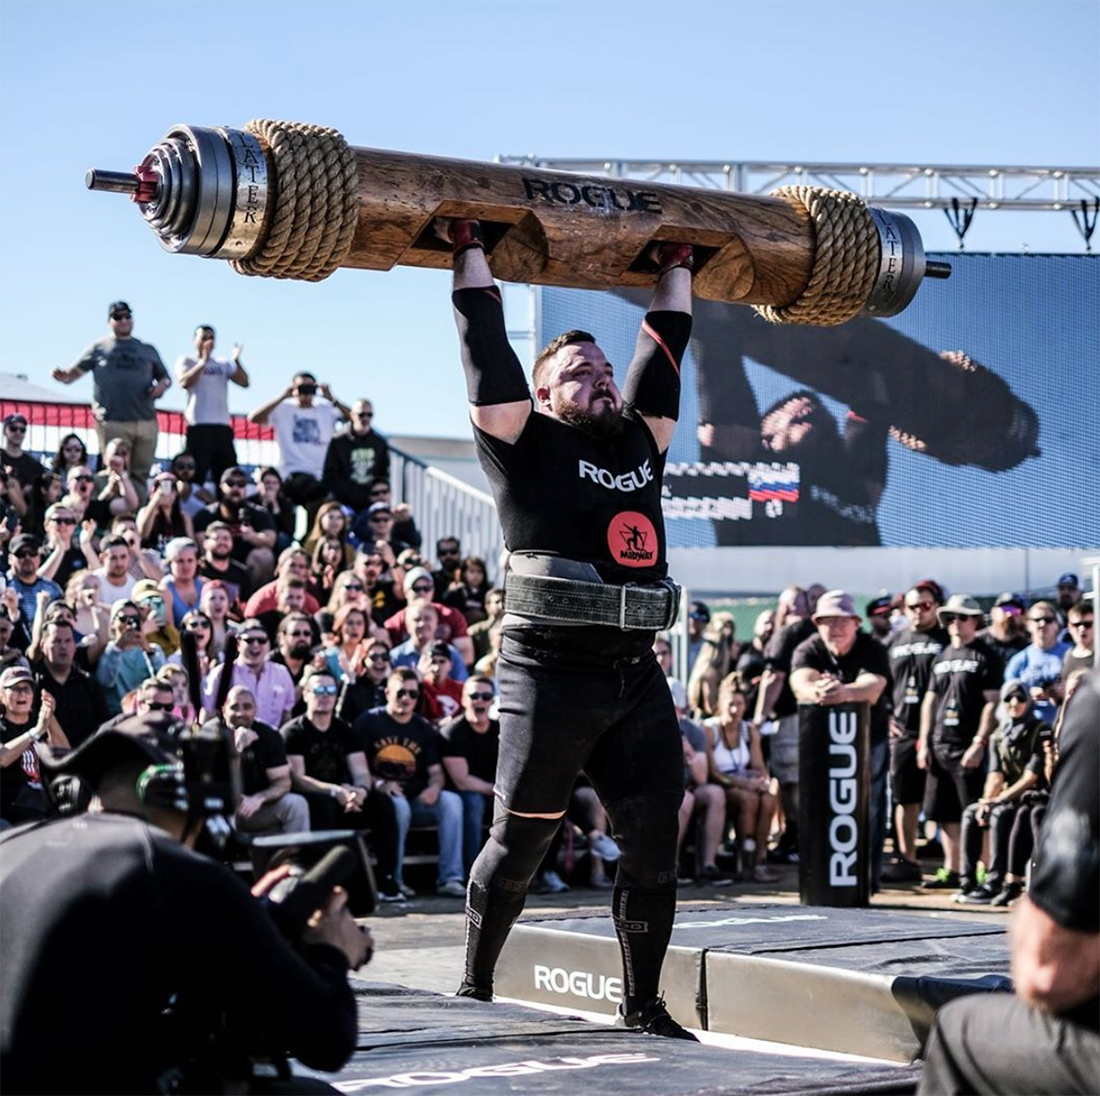 Strong man lifting heavy weights in front of a crowd